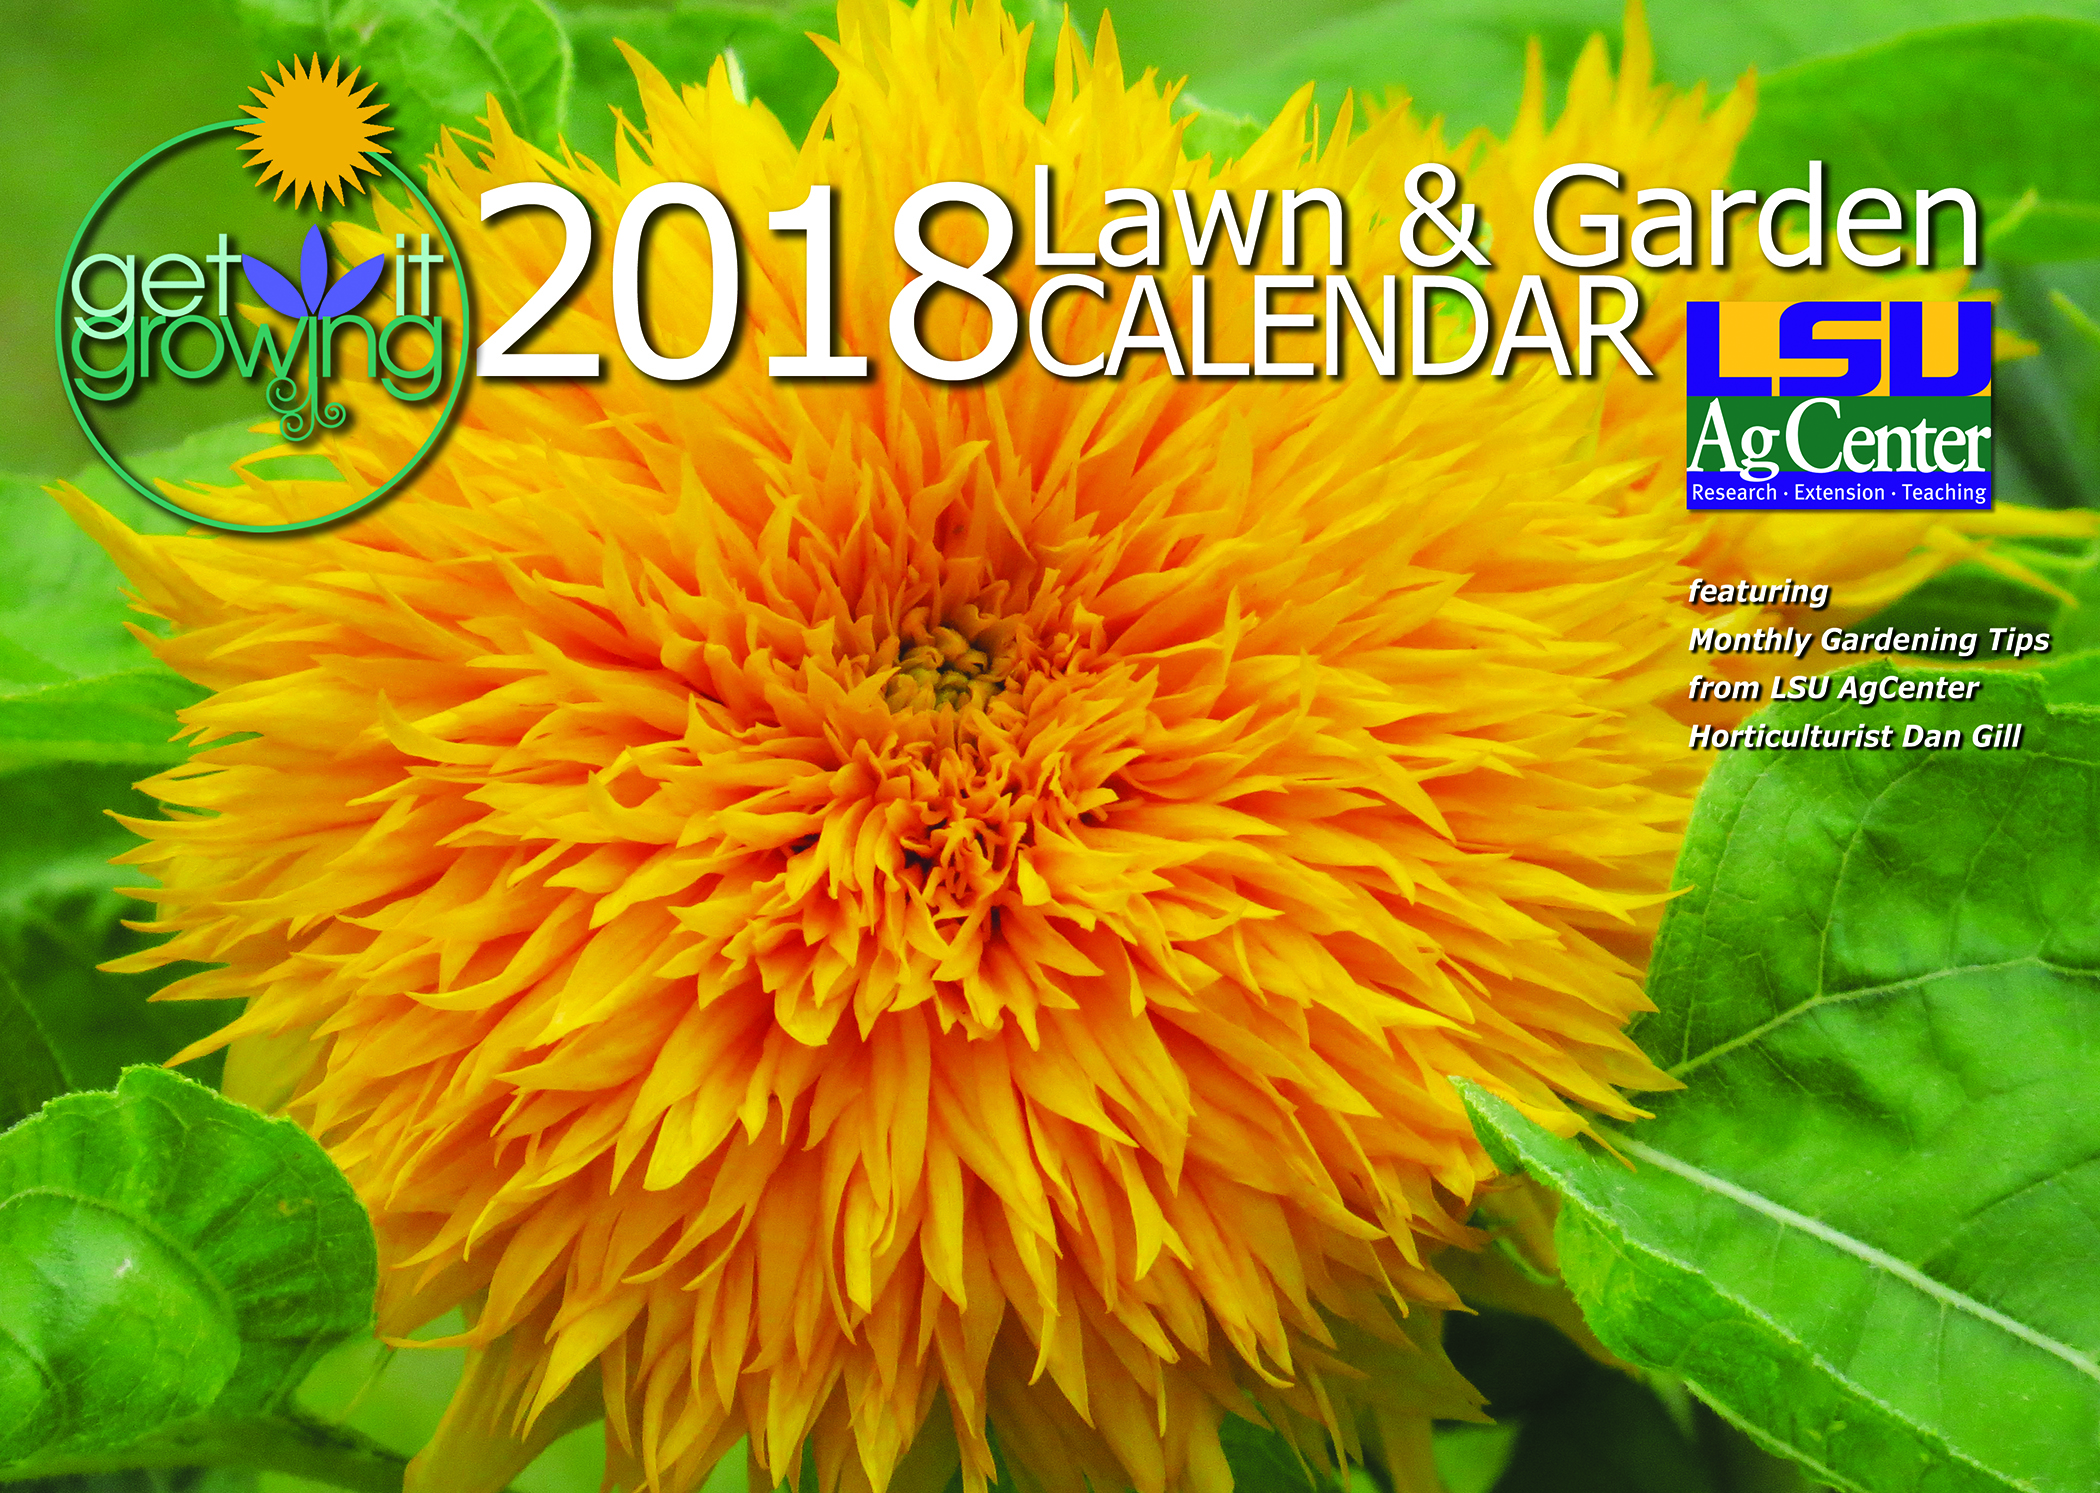 """Get It Growing"" in 2018 with AgCenter lawn and garden calendar"